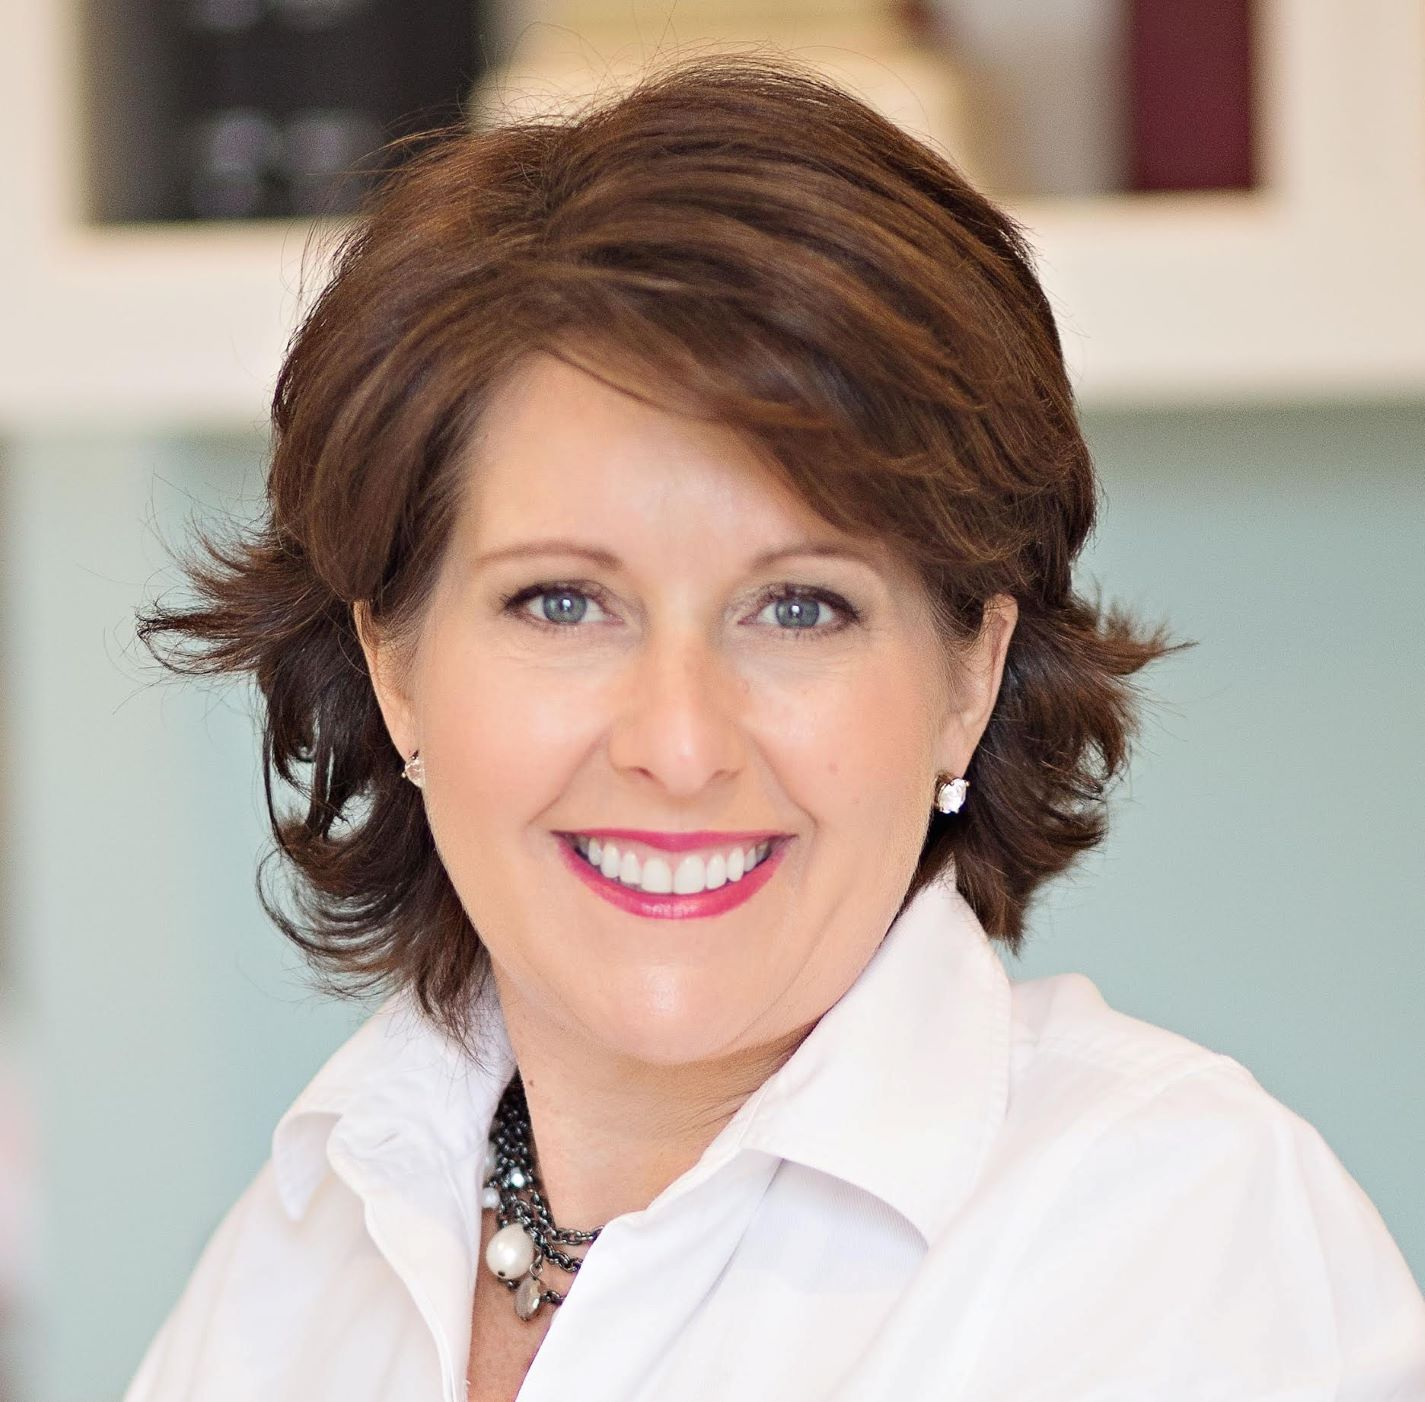 Guest blogger Lisa Earle McLeod, author of Leading with Noble Purpose